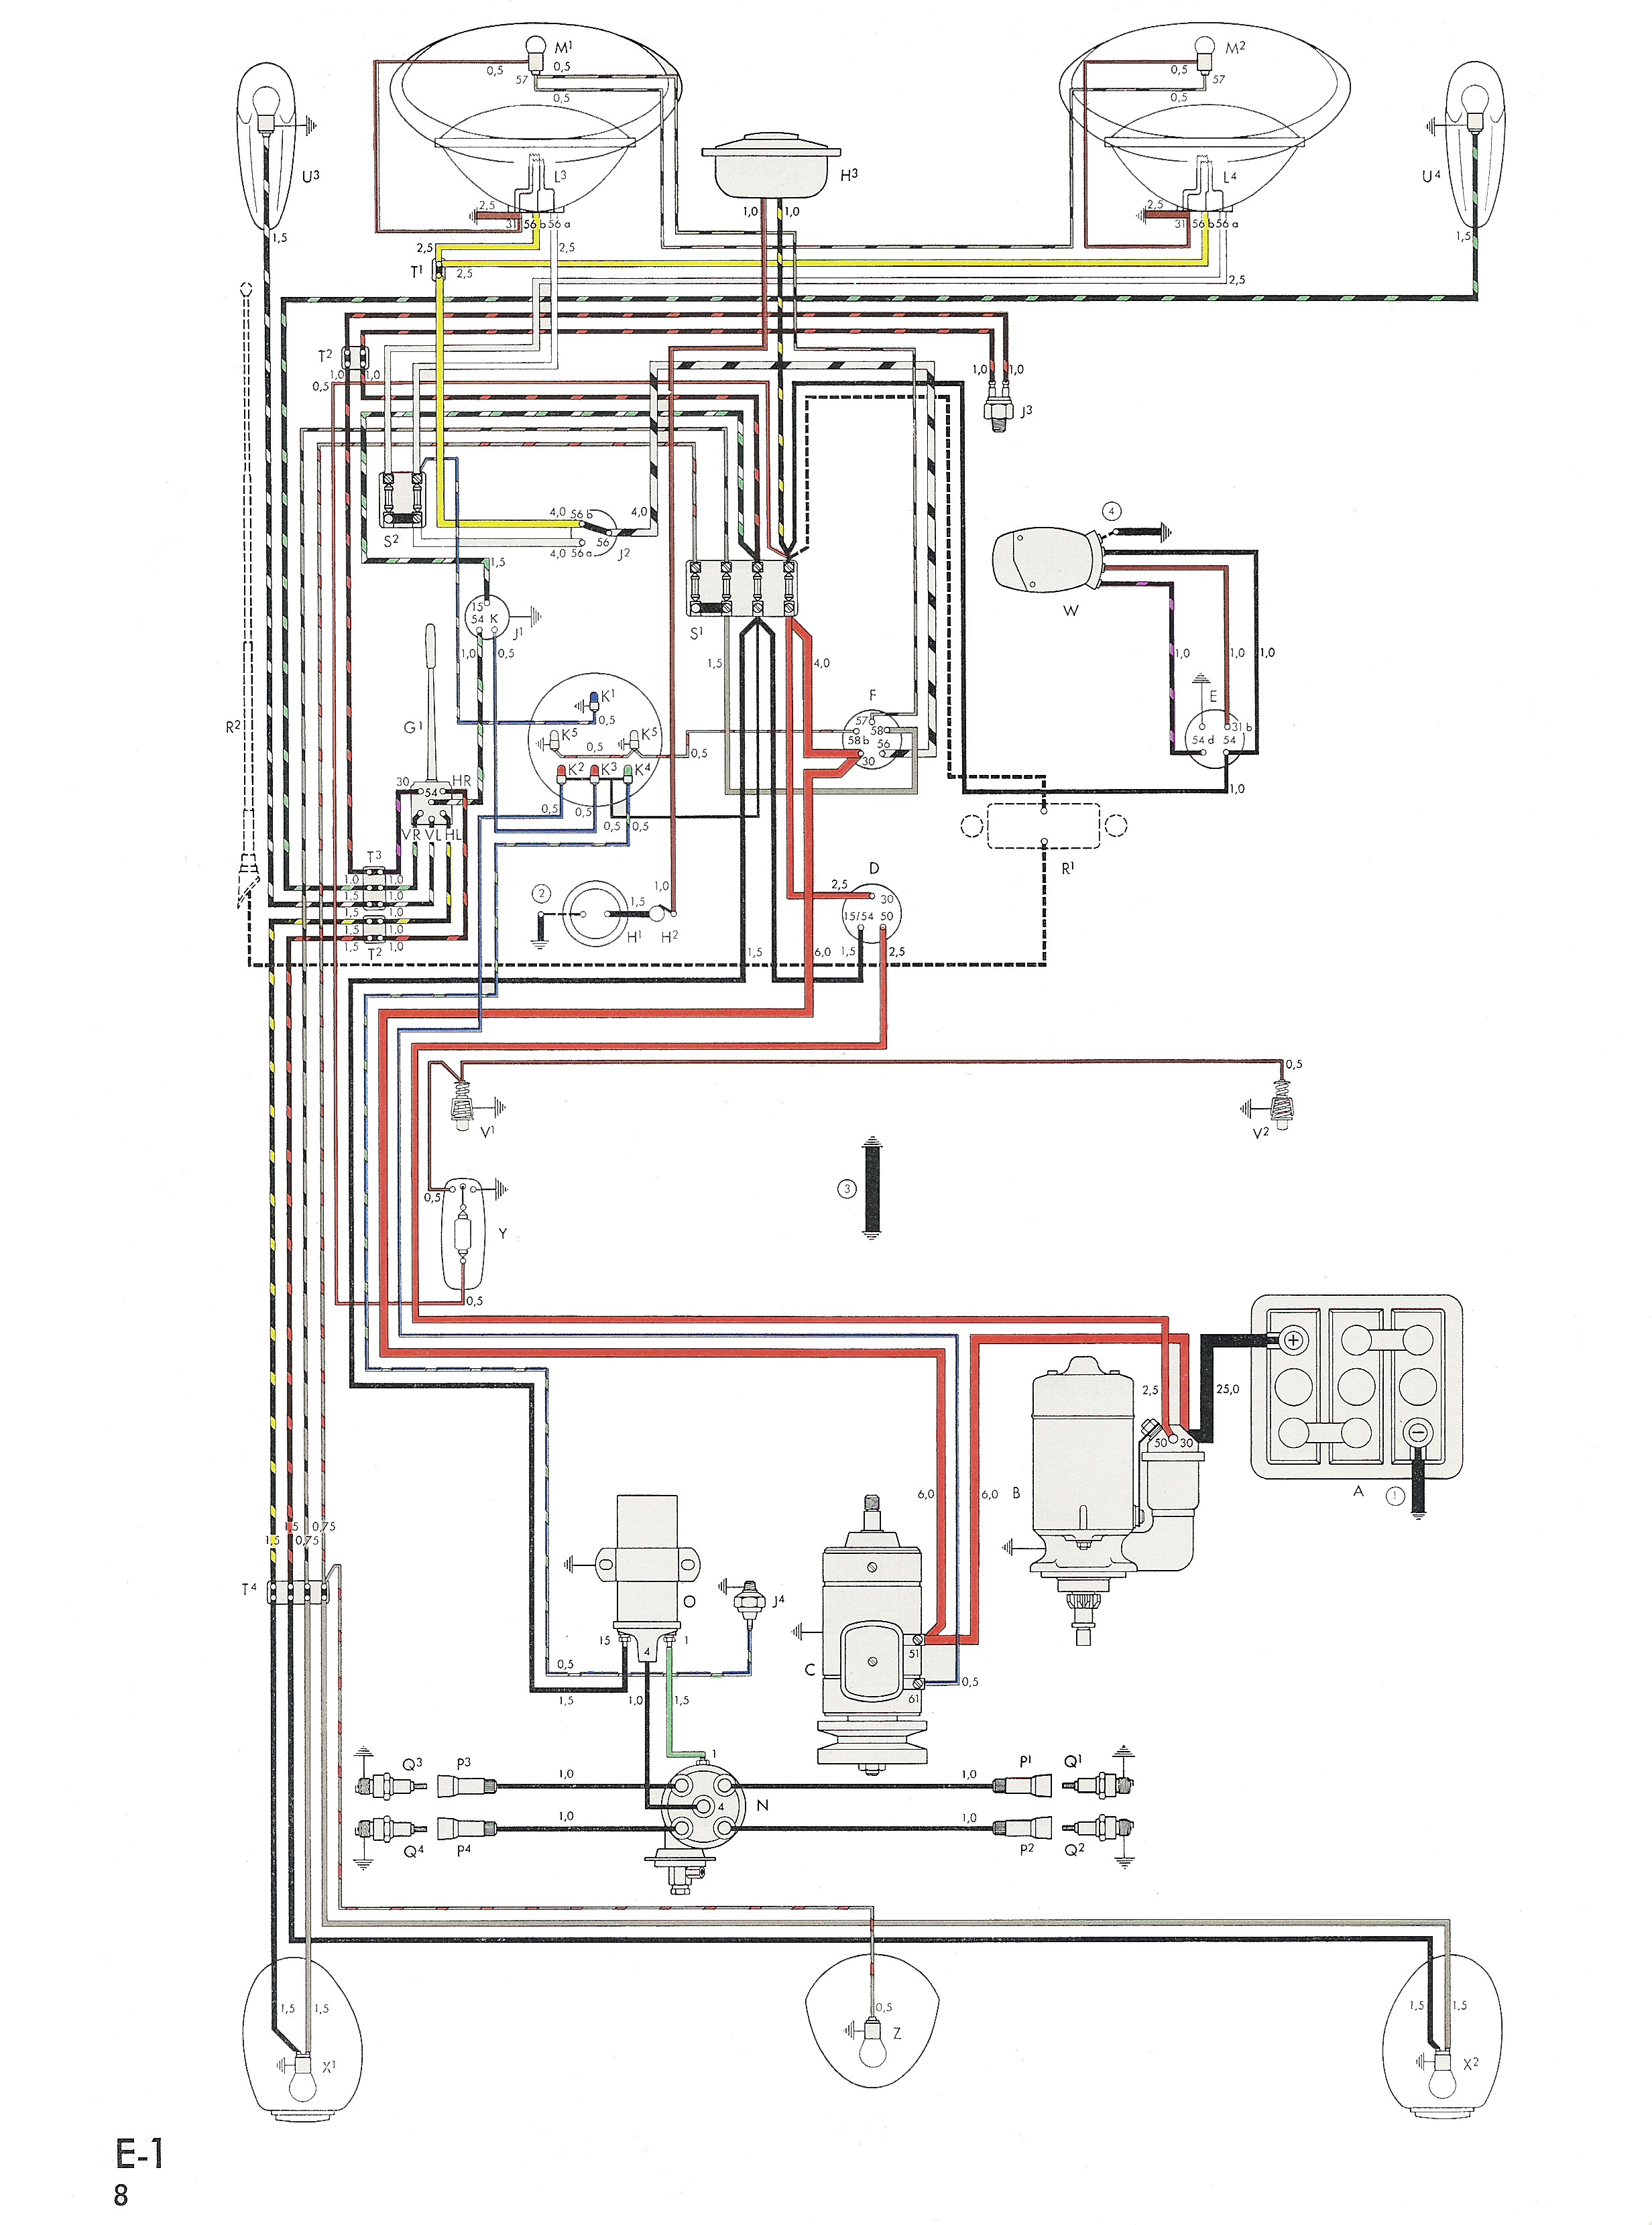 1970 Vw Beetle Engine Diagram Wiring Diagram In Addition Vw Beetle Voltage  Regulator Wiring Of 1970